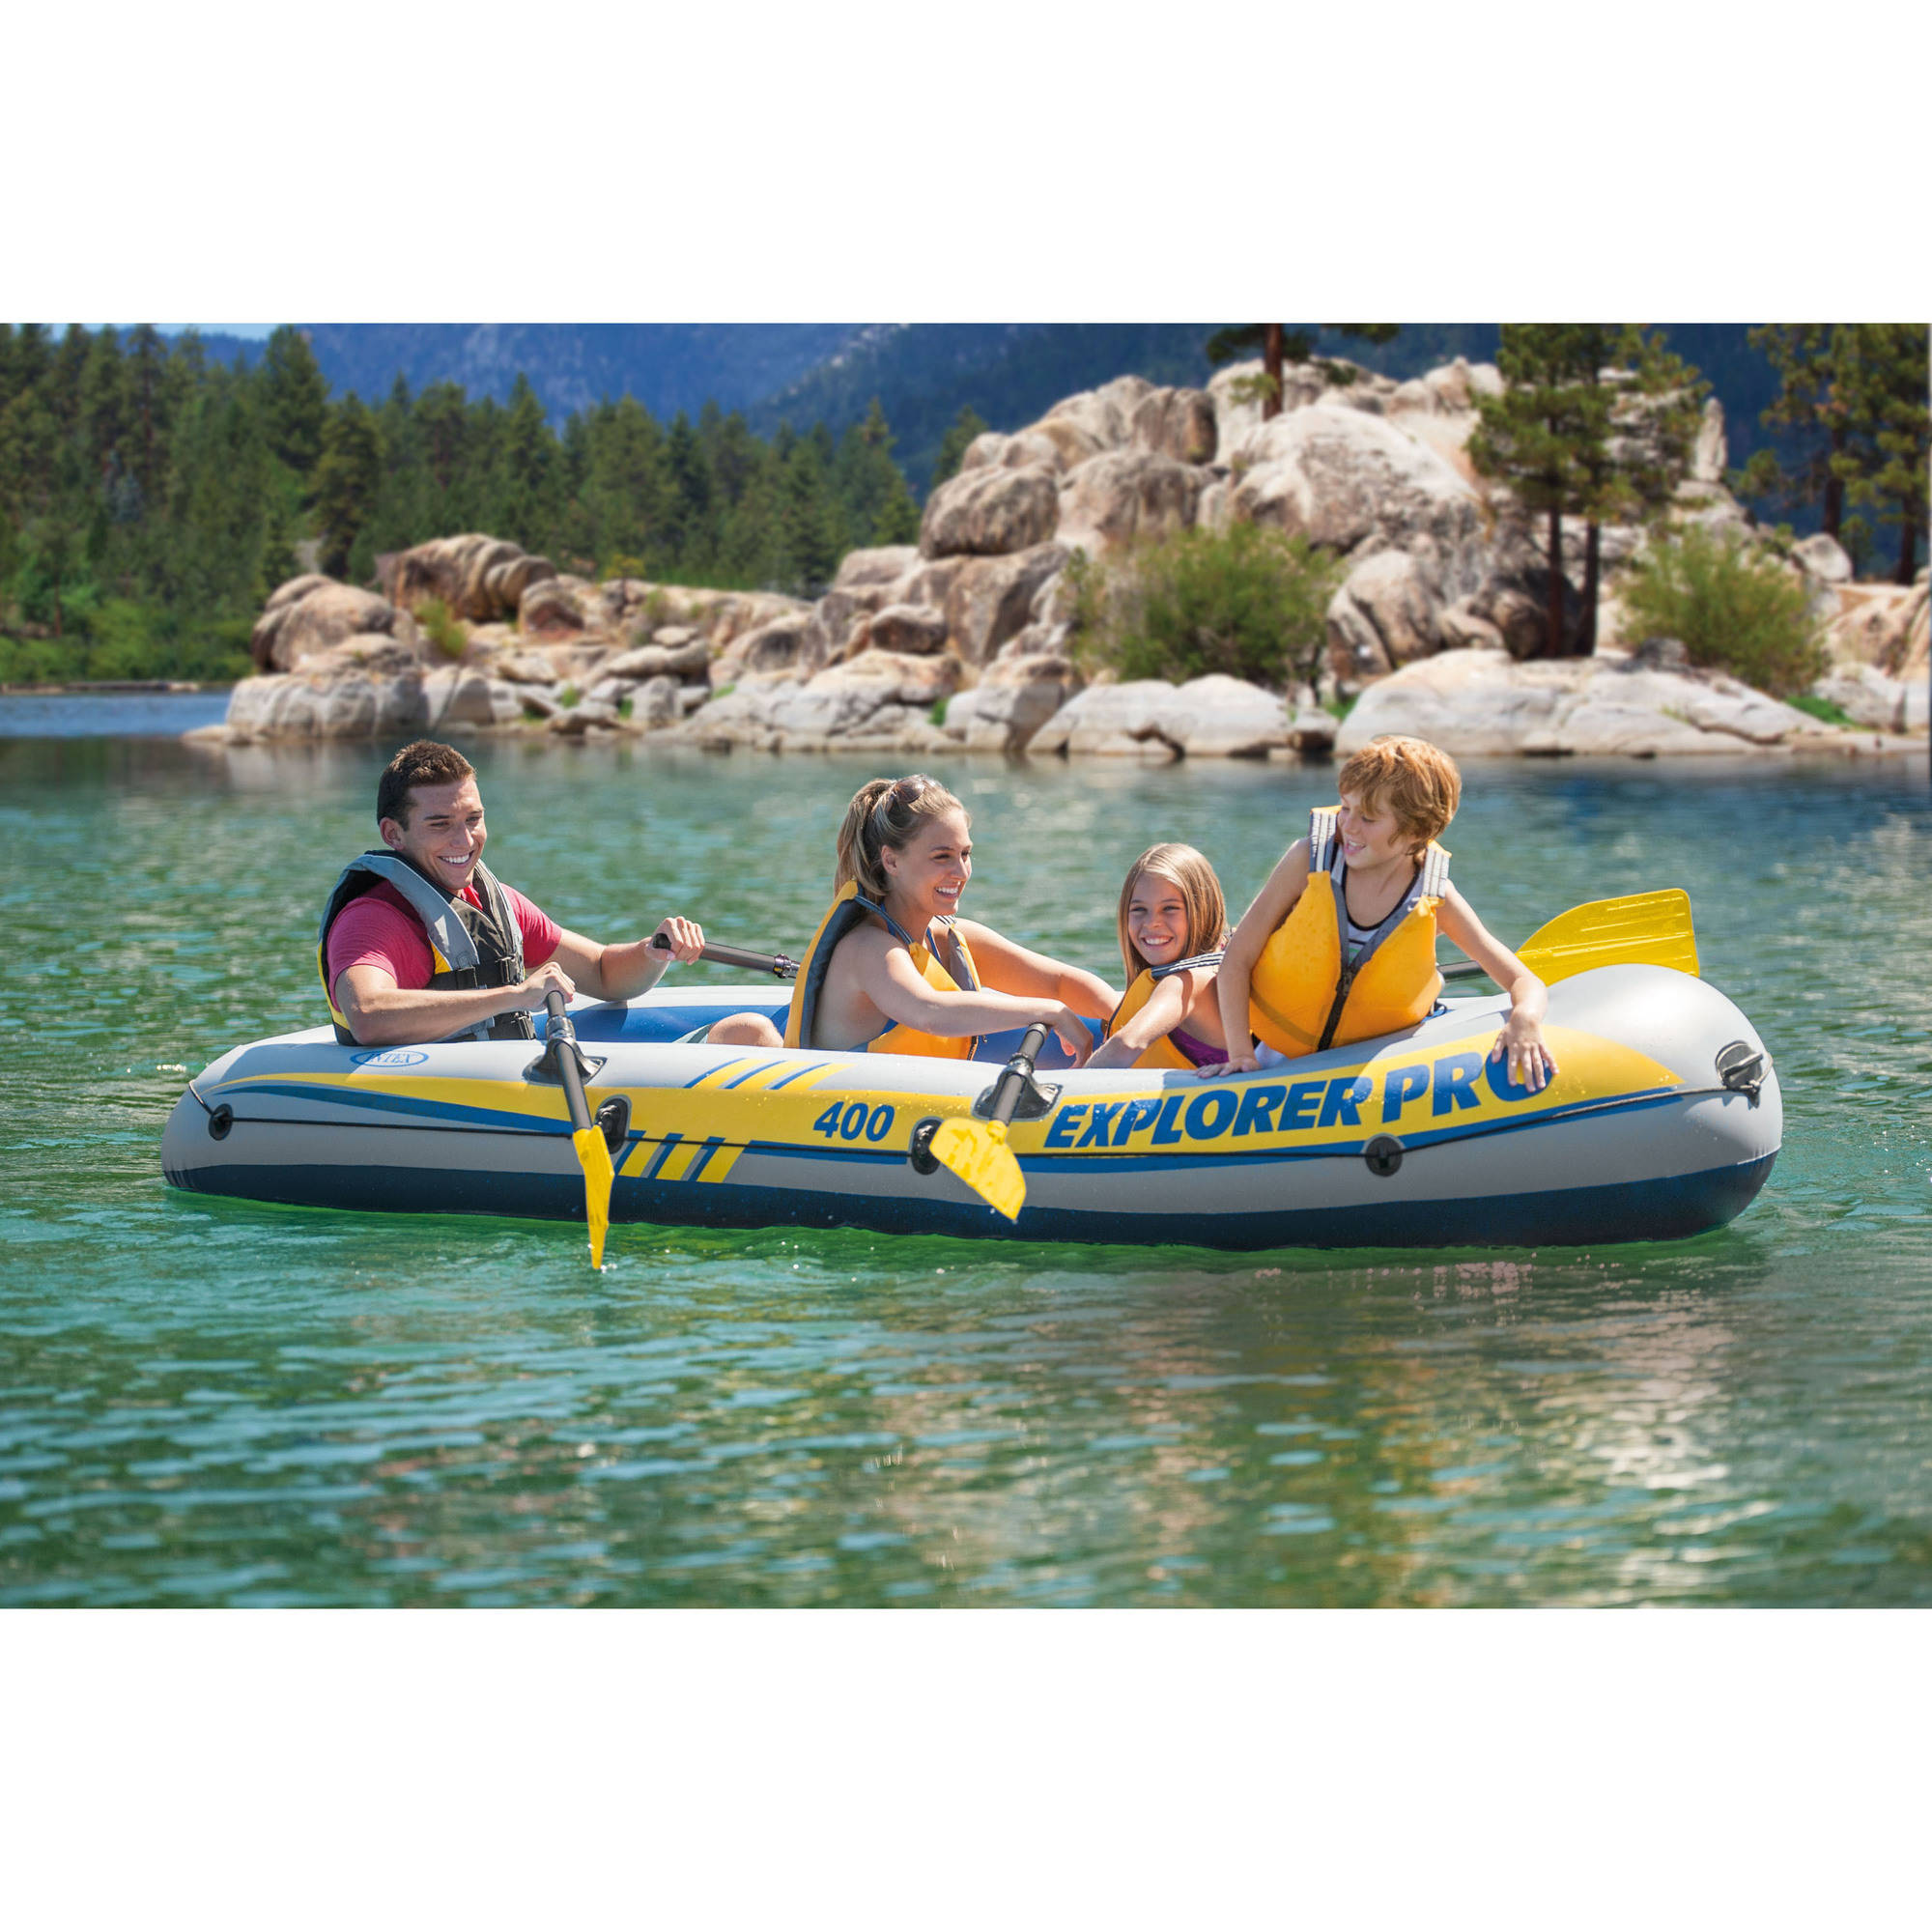 Intex Inflatable Explorer Pro 400 Four-Person Boat with Oars and ...